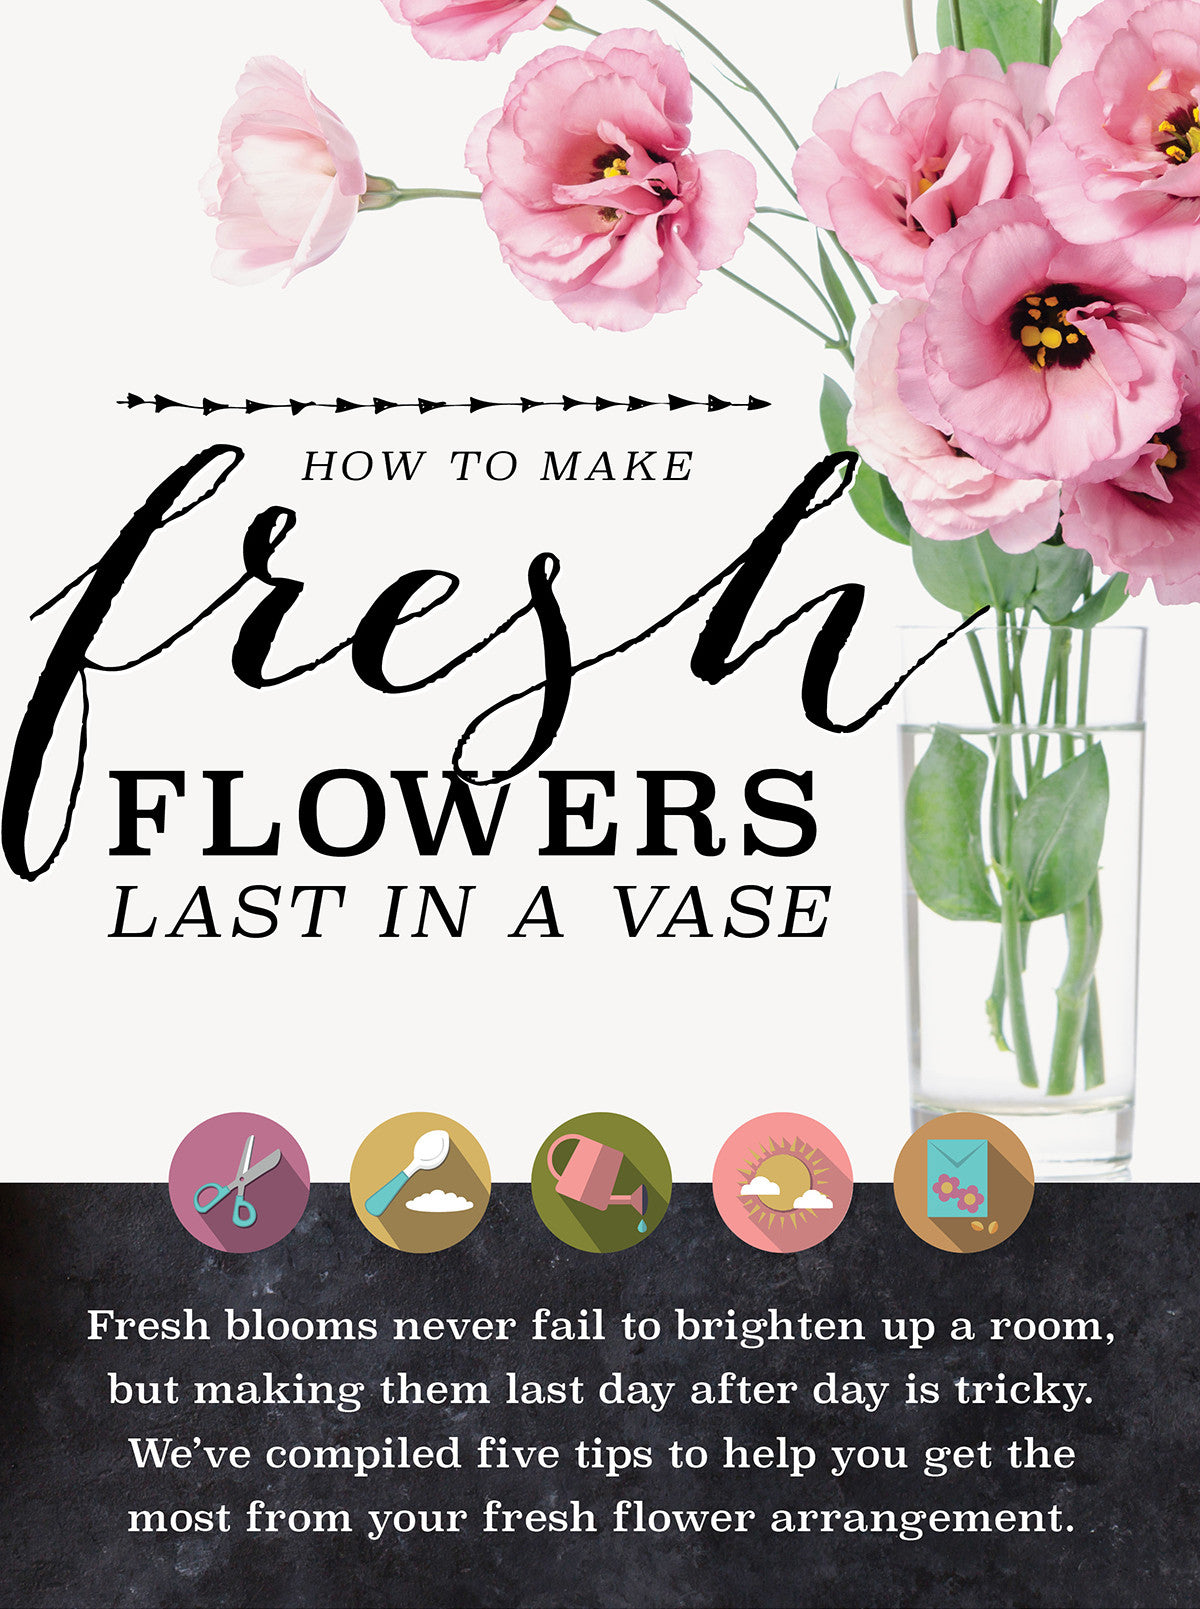 How to Make Fresh Flowers Last in a Vase